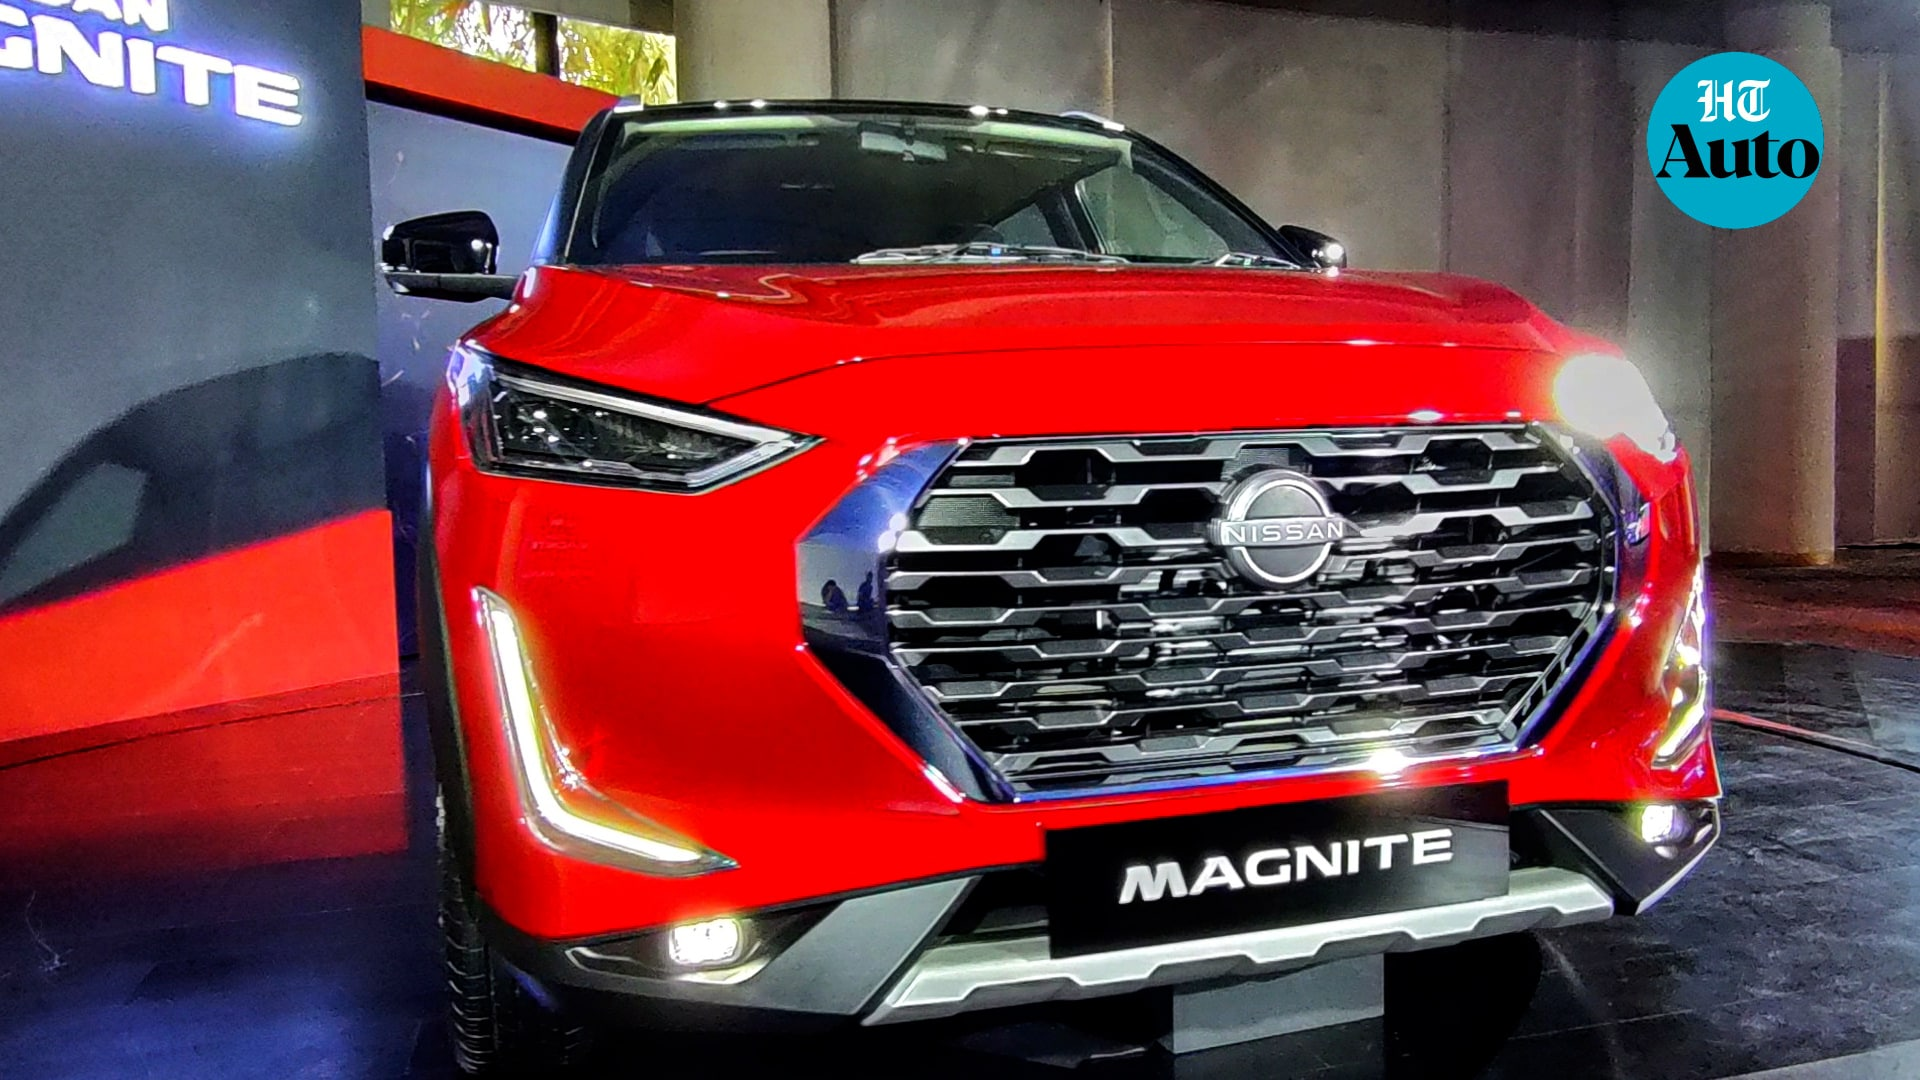 Magnite is expected to be launched in India in late November. The car will challenge the established segment players like Hyundai Venue and Maruti Suzuki Vitara Brezza as well as relatively new challengers like Kia Sonet and Toyota Urban Cruiser. (HT Auto/Sabysachi Dasgupta)